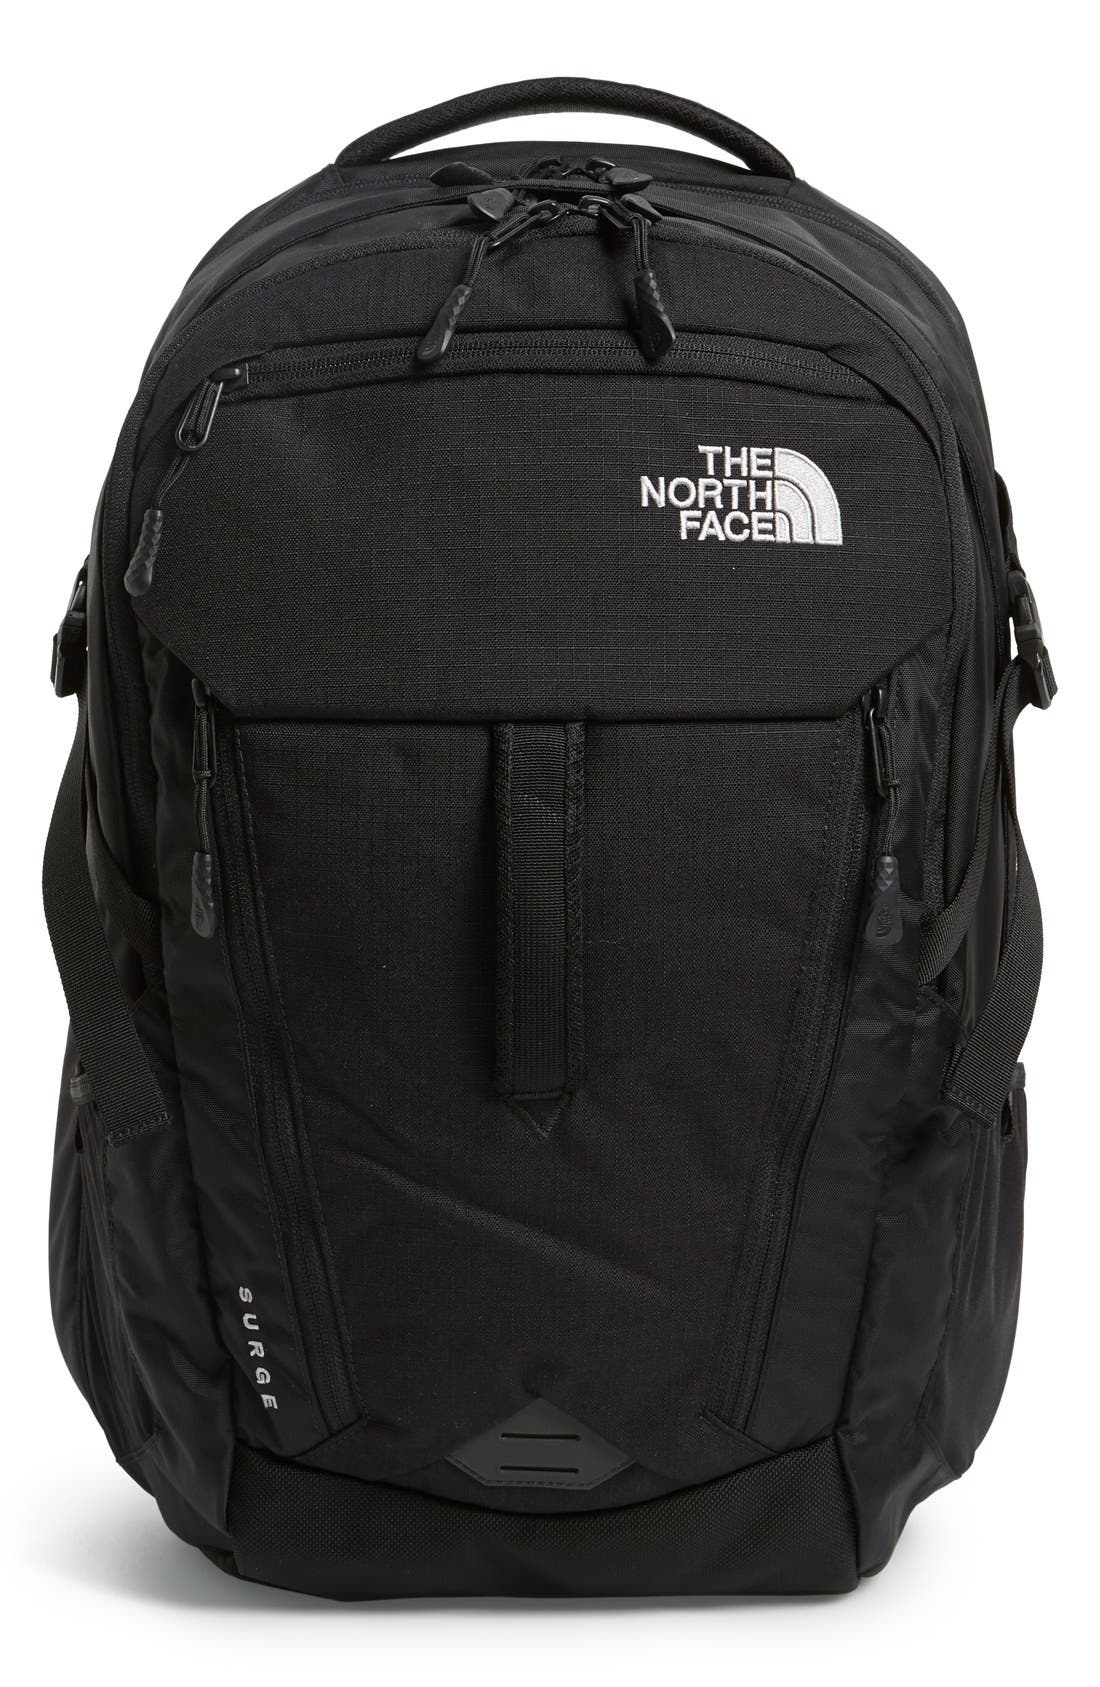 The North Face 'Surge' Backpack